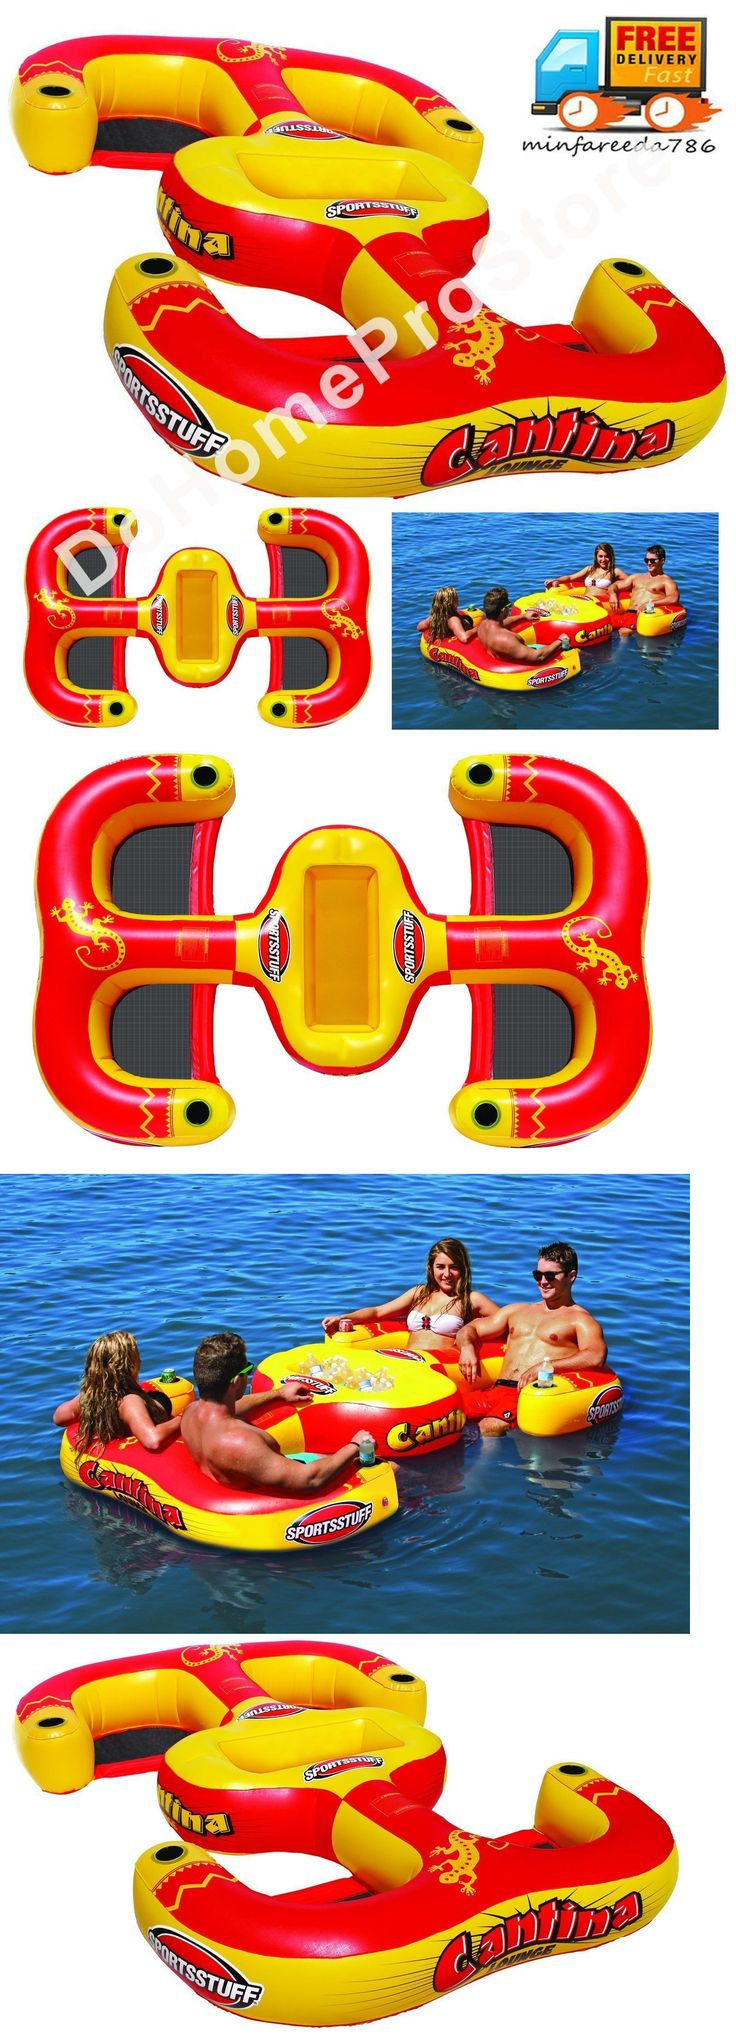 Inflatable Floats and Tubes 79801: Inflatable Pool Beach Water Lake Chair Swimming Lounger Floating Raft 4 Person -> BUY IT NOW ONLY: $109 on eBay!